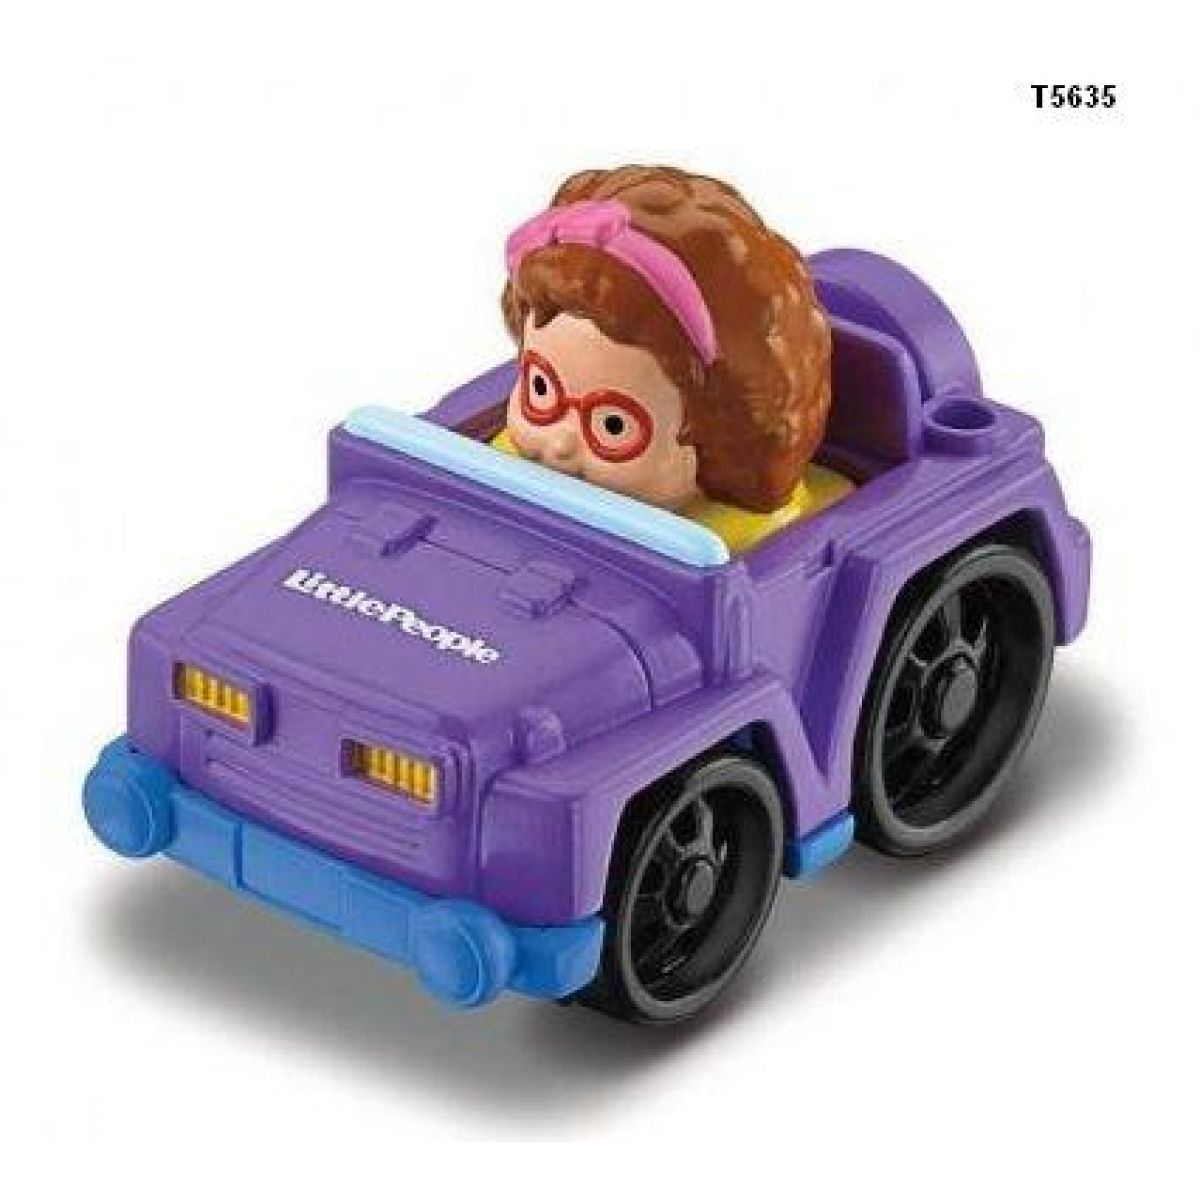 FISHER PRICE V6722 Wheelies autíčka - T5633